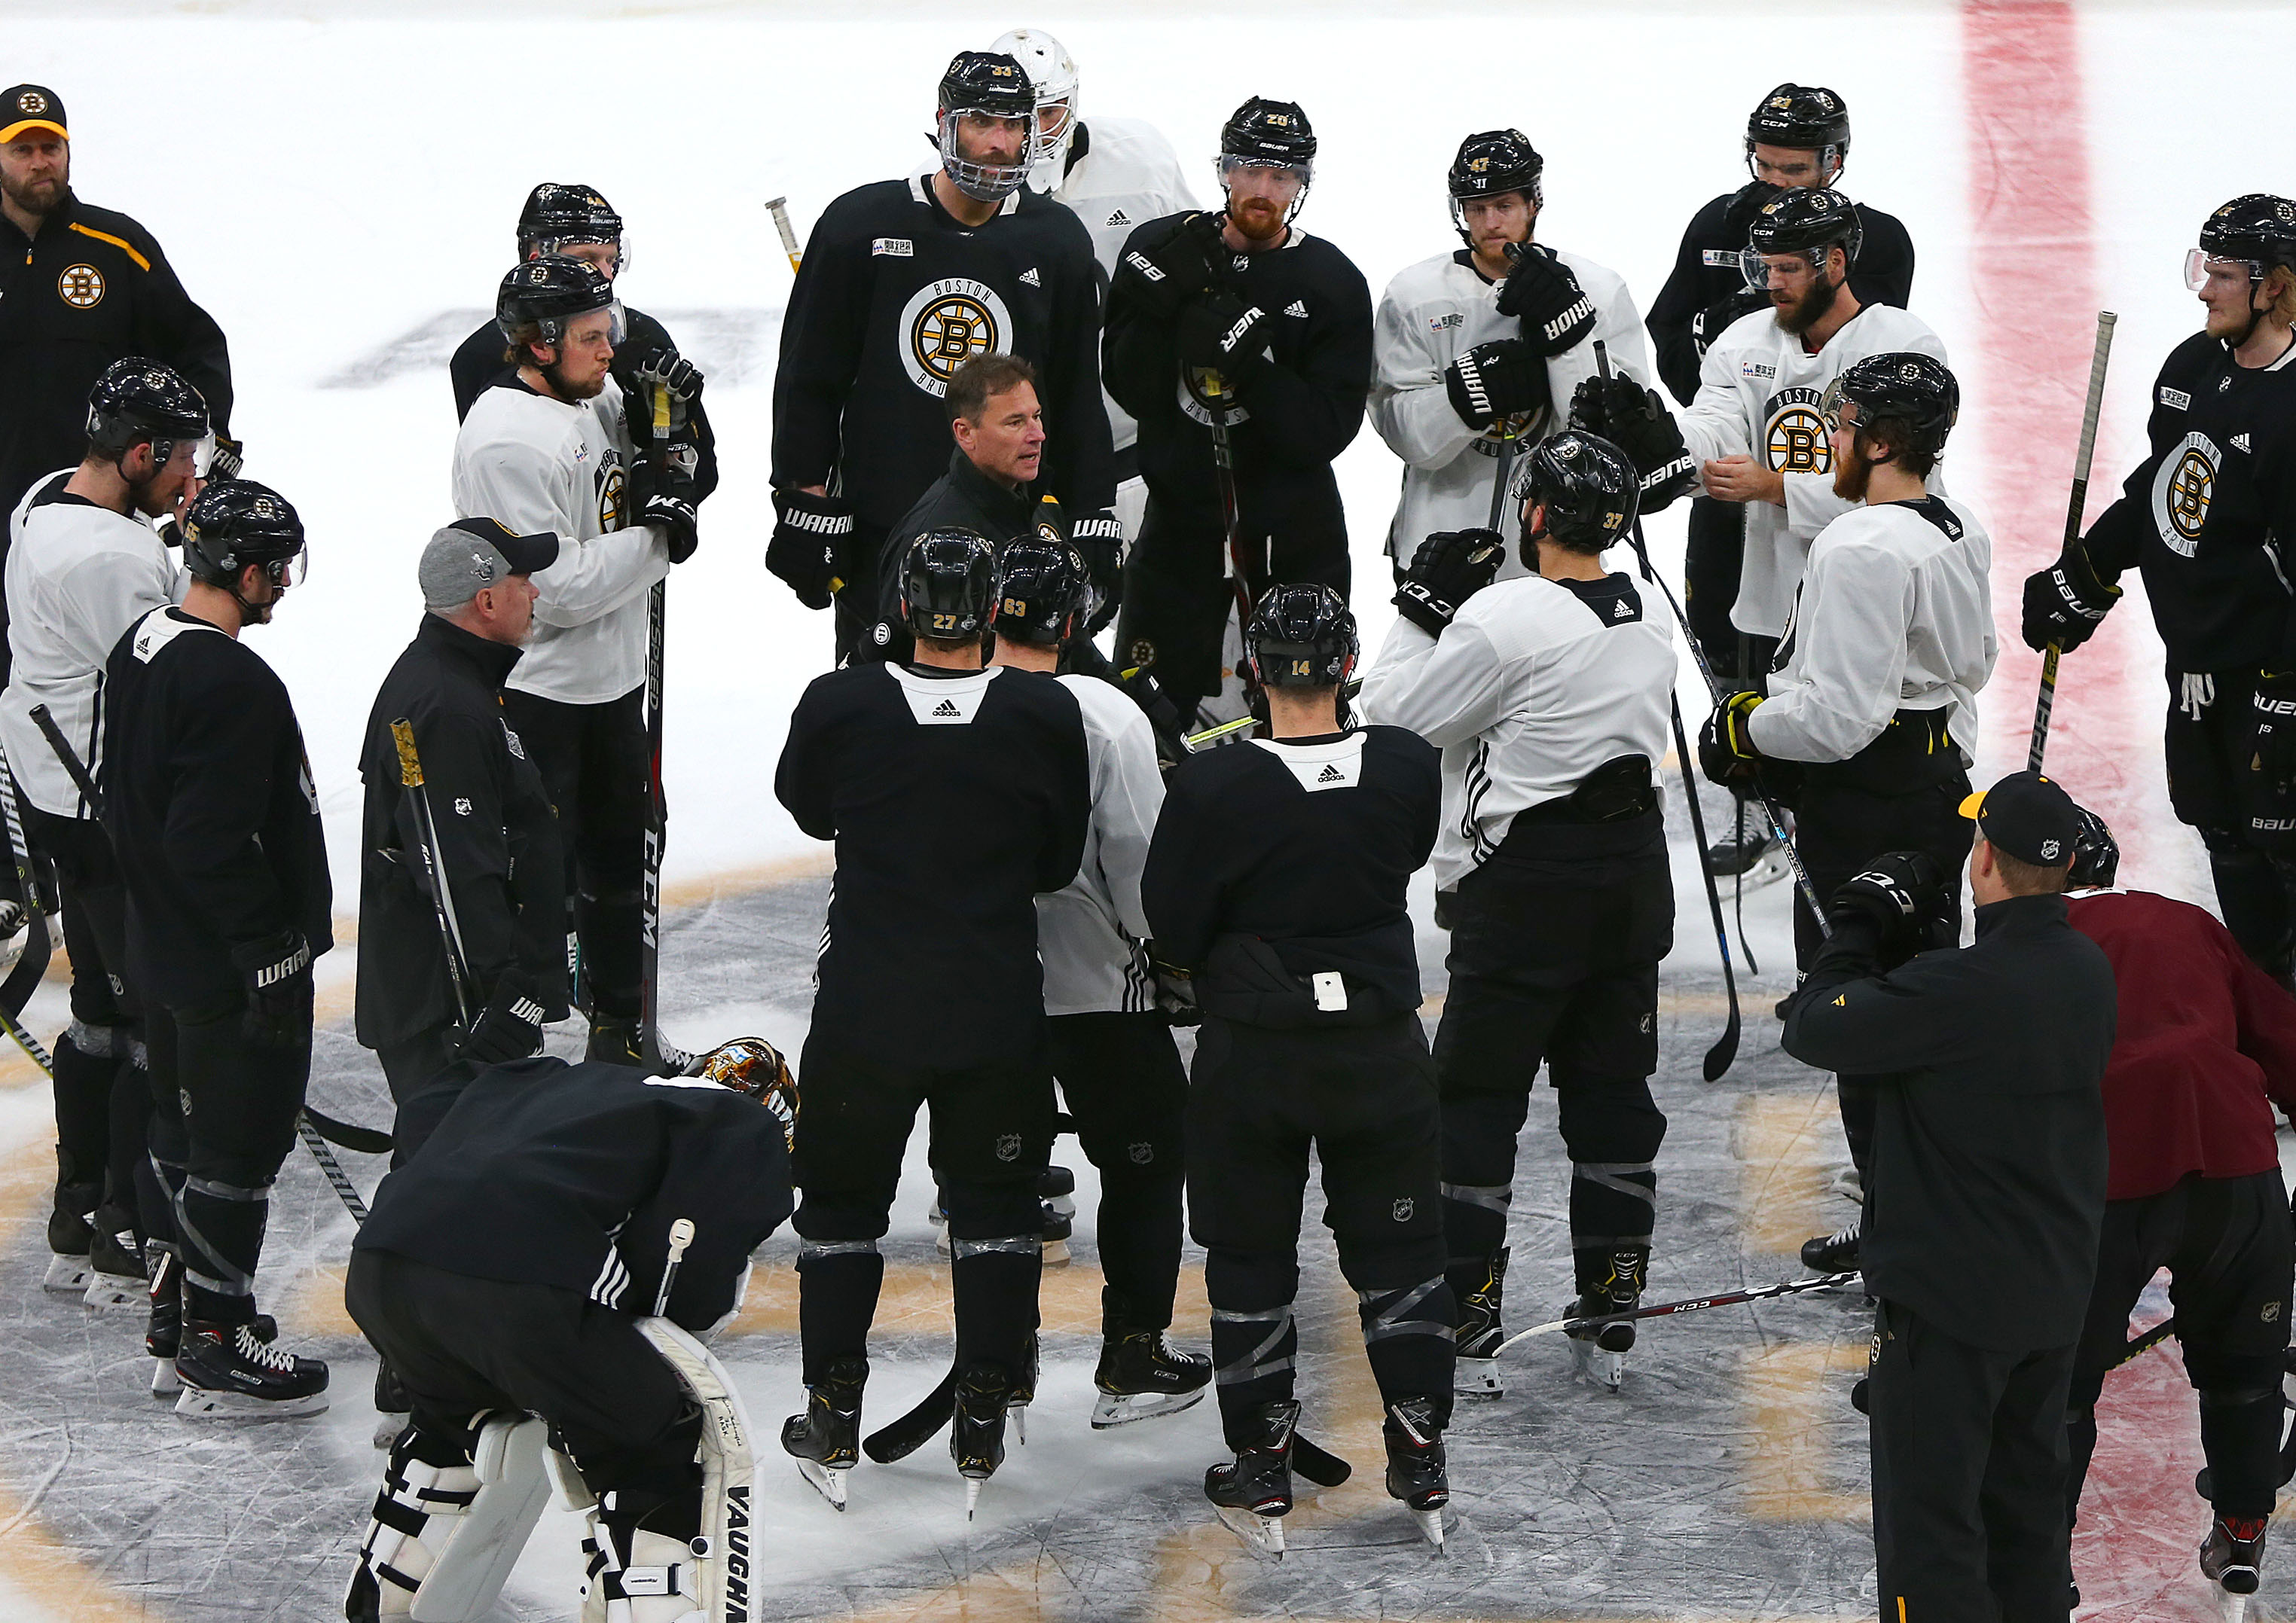 How to improve the NHL's product? Dress more skaters